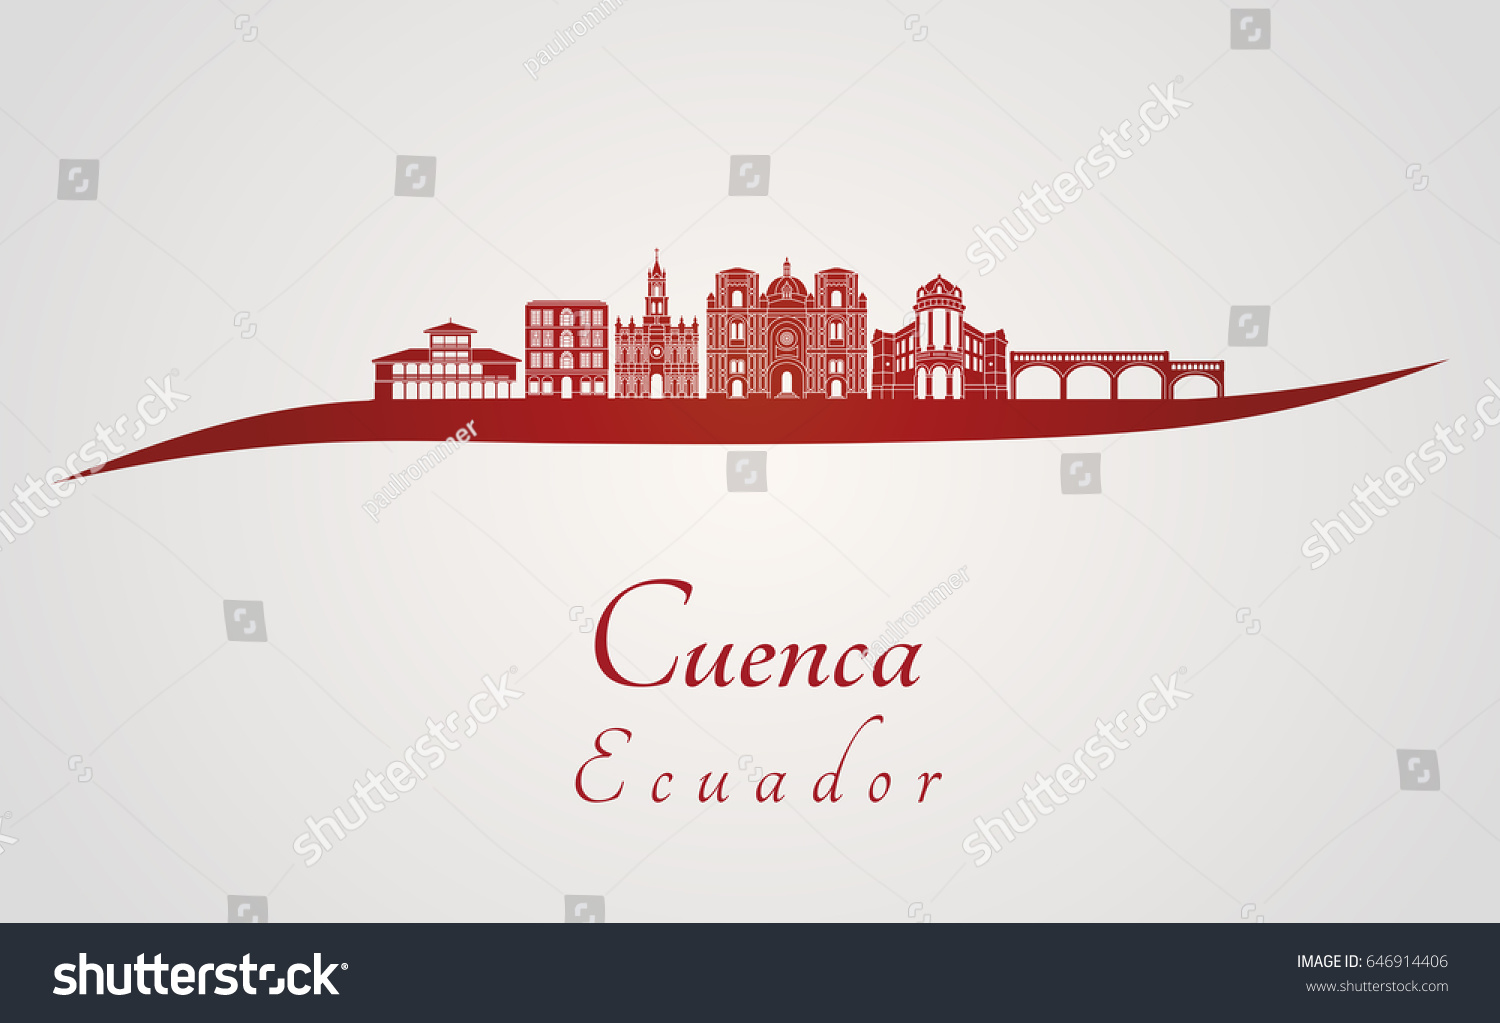 Cuenca Ec Skyline Red Gray Background Stock Vector Royalty 1500x1023